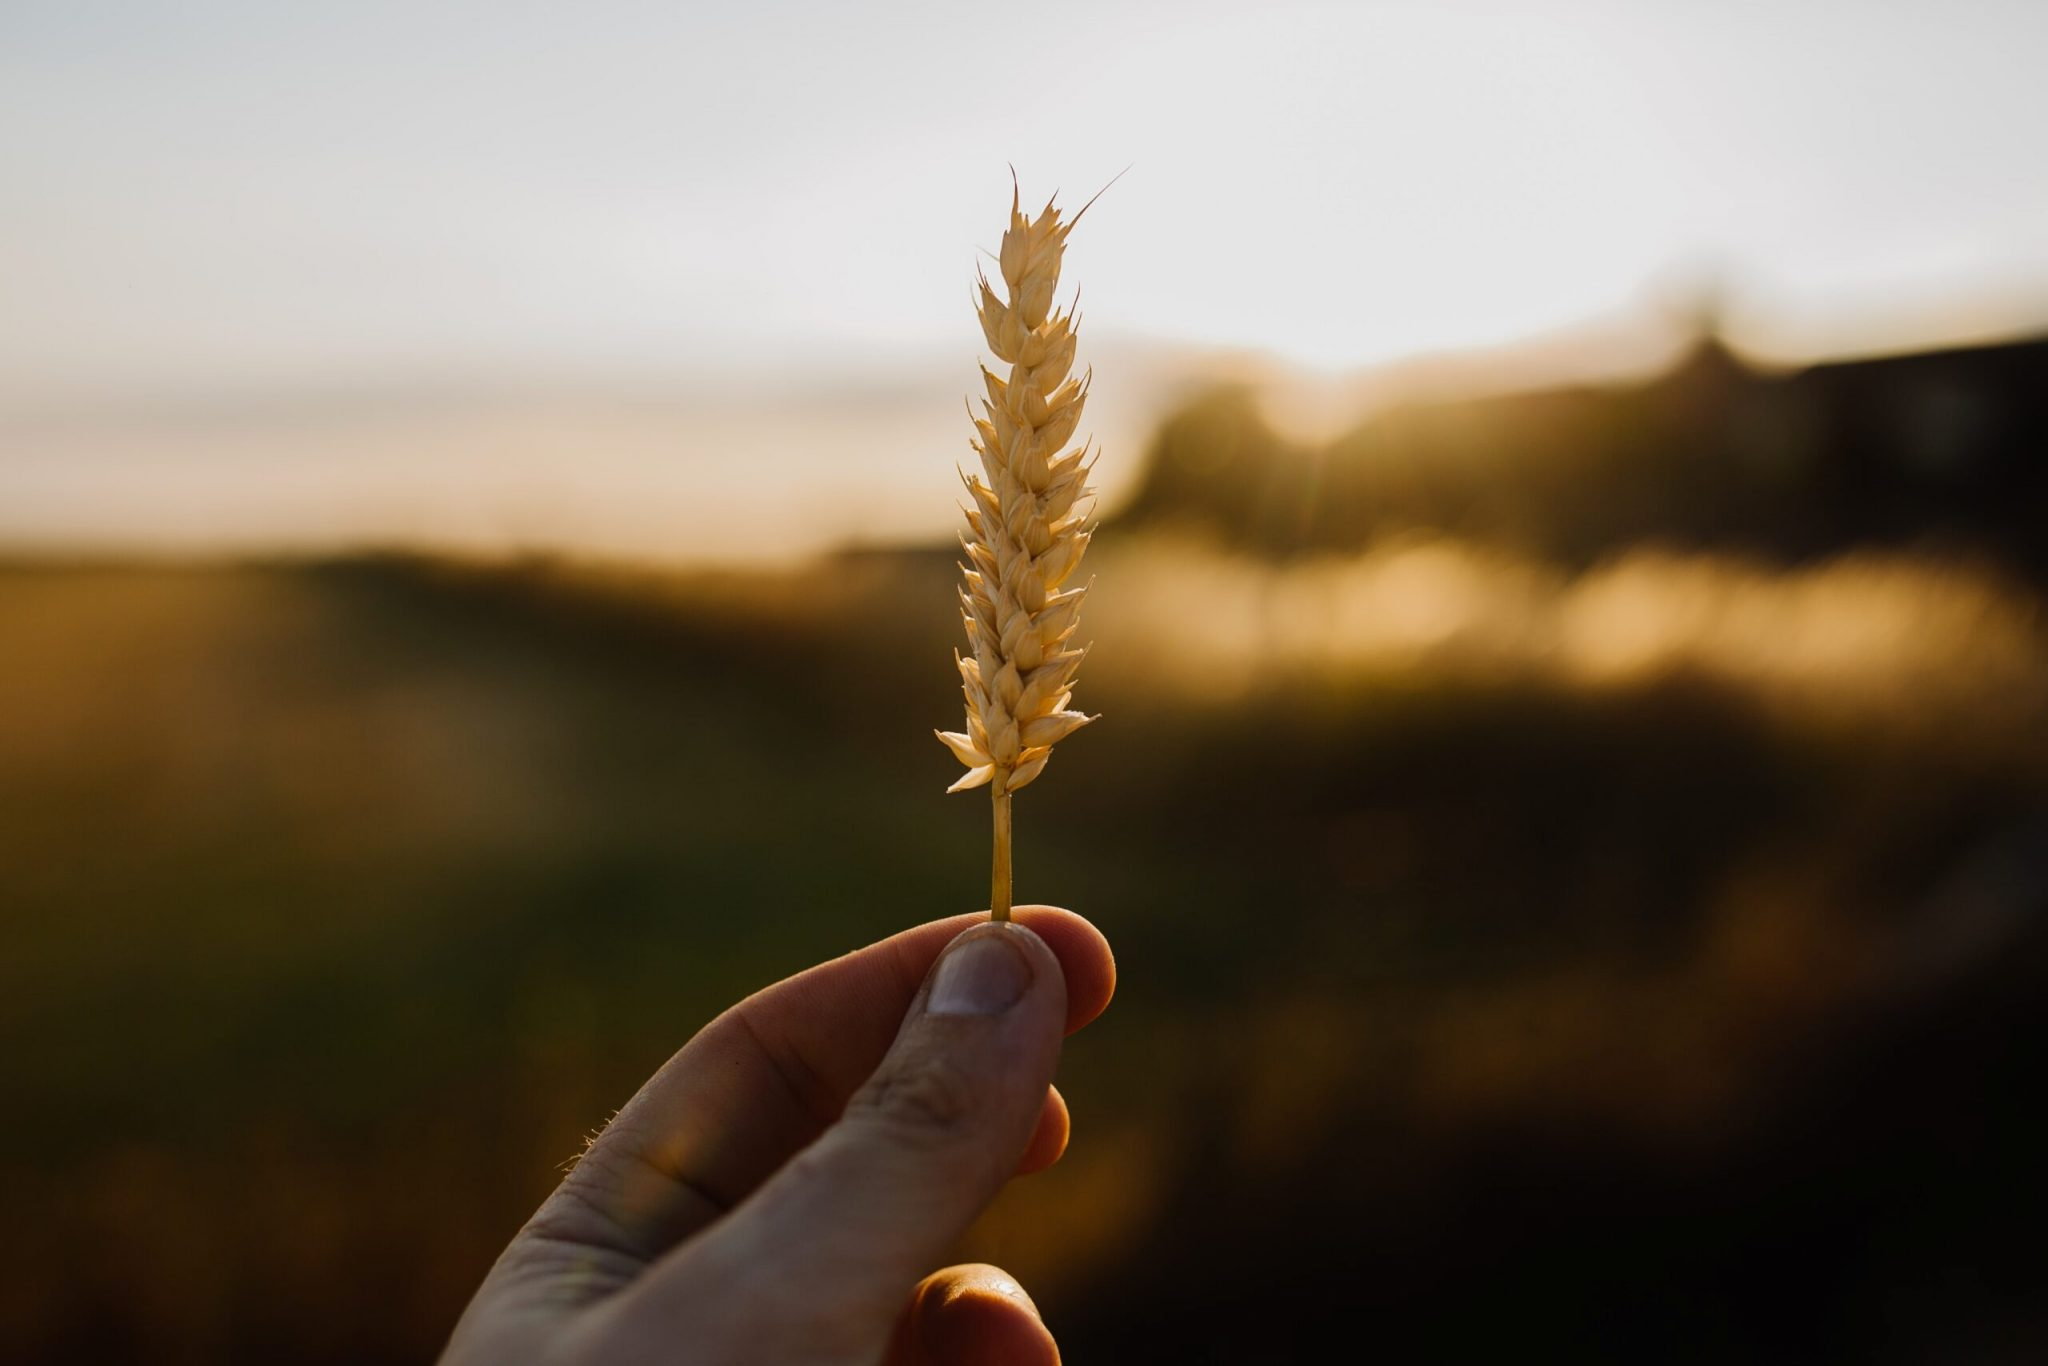 Hand holding a stem of wheat